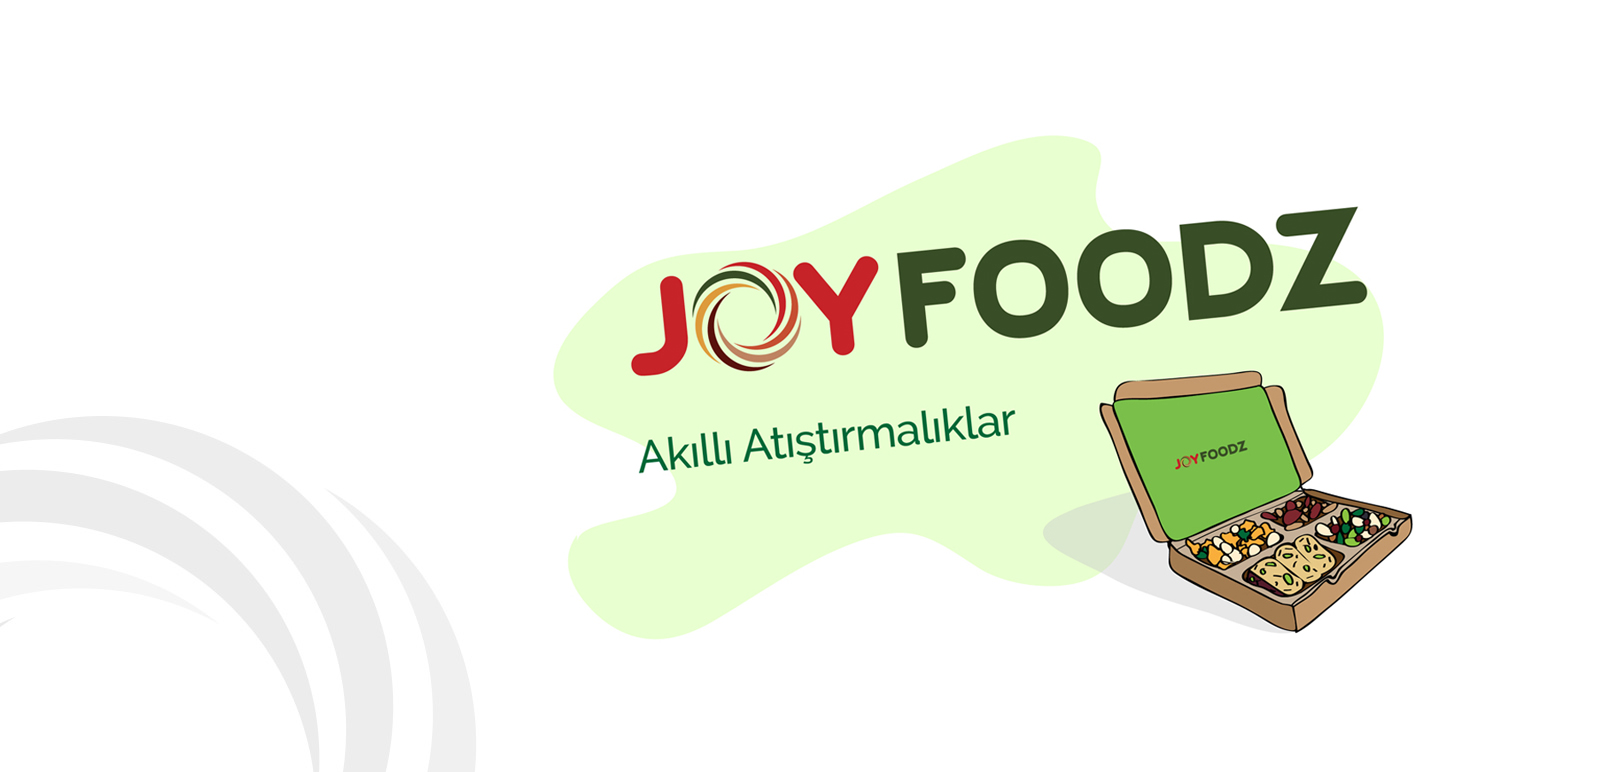 Joyfoodz Animation, Illustration 15